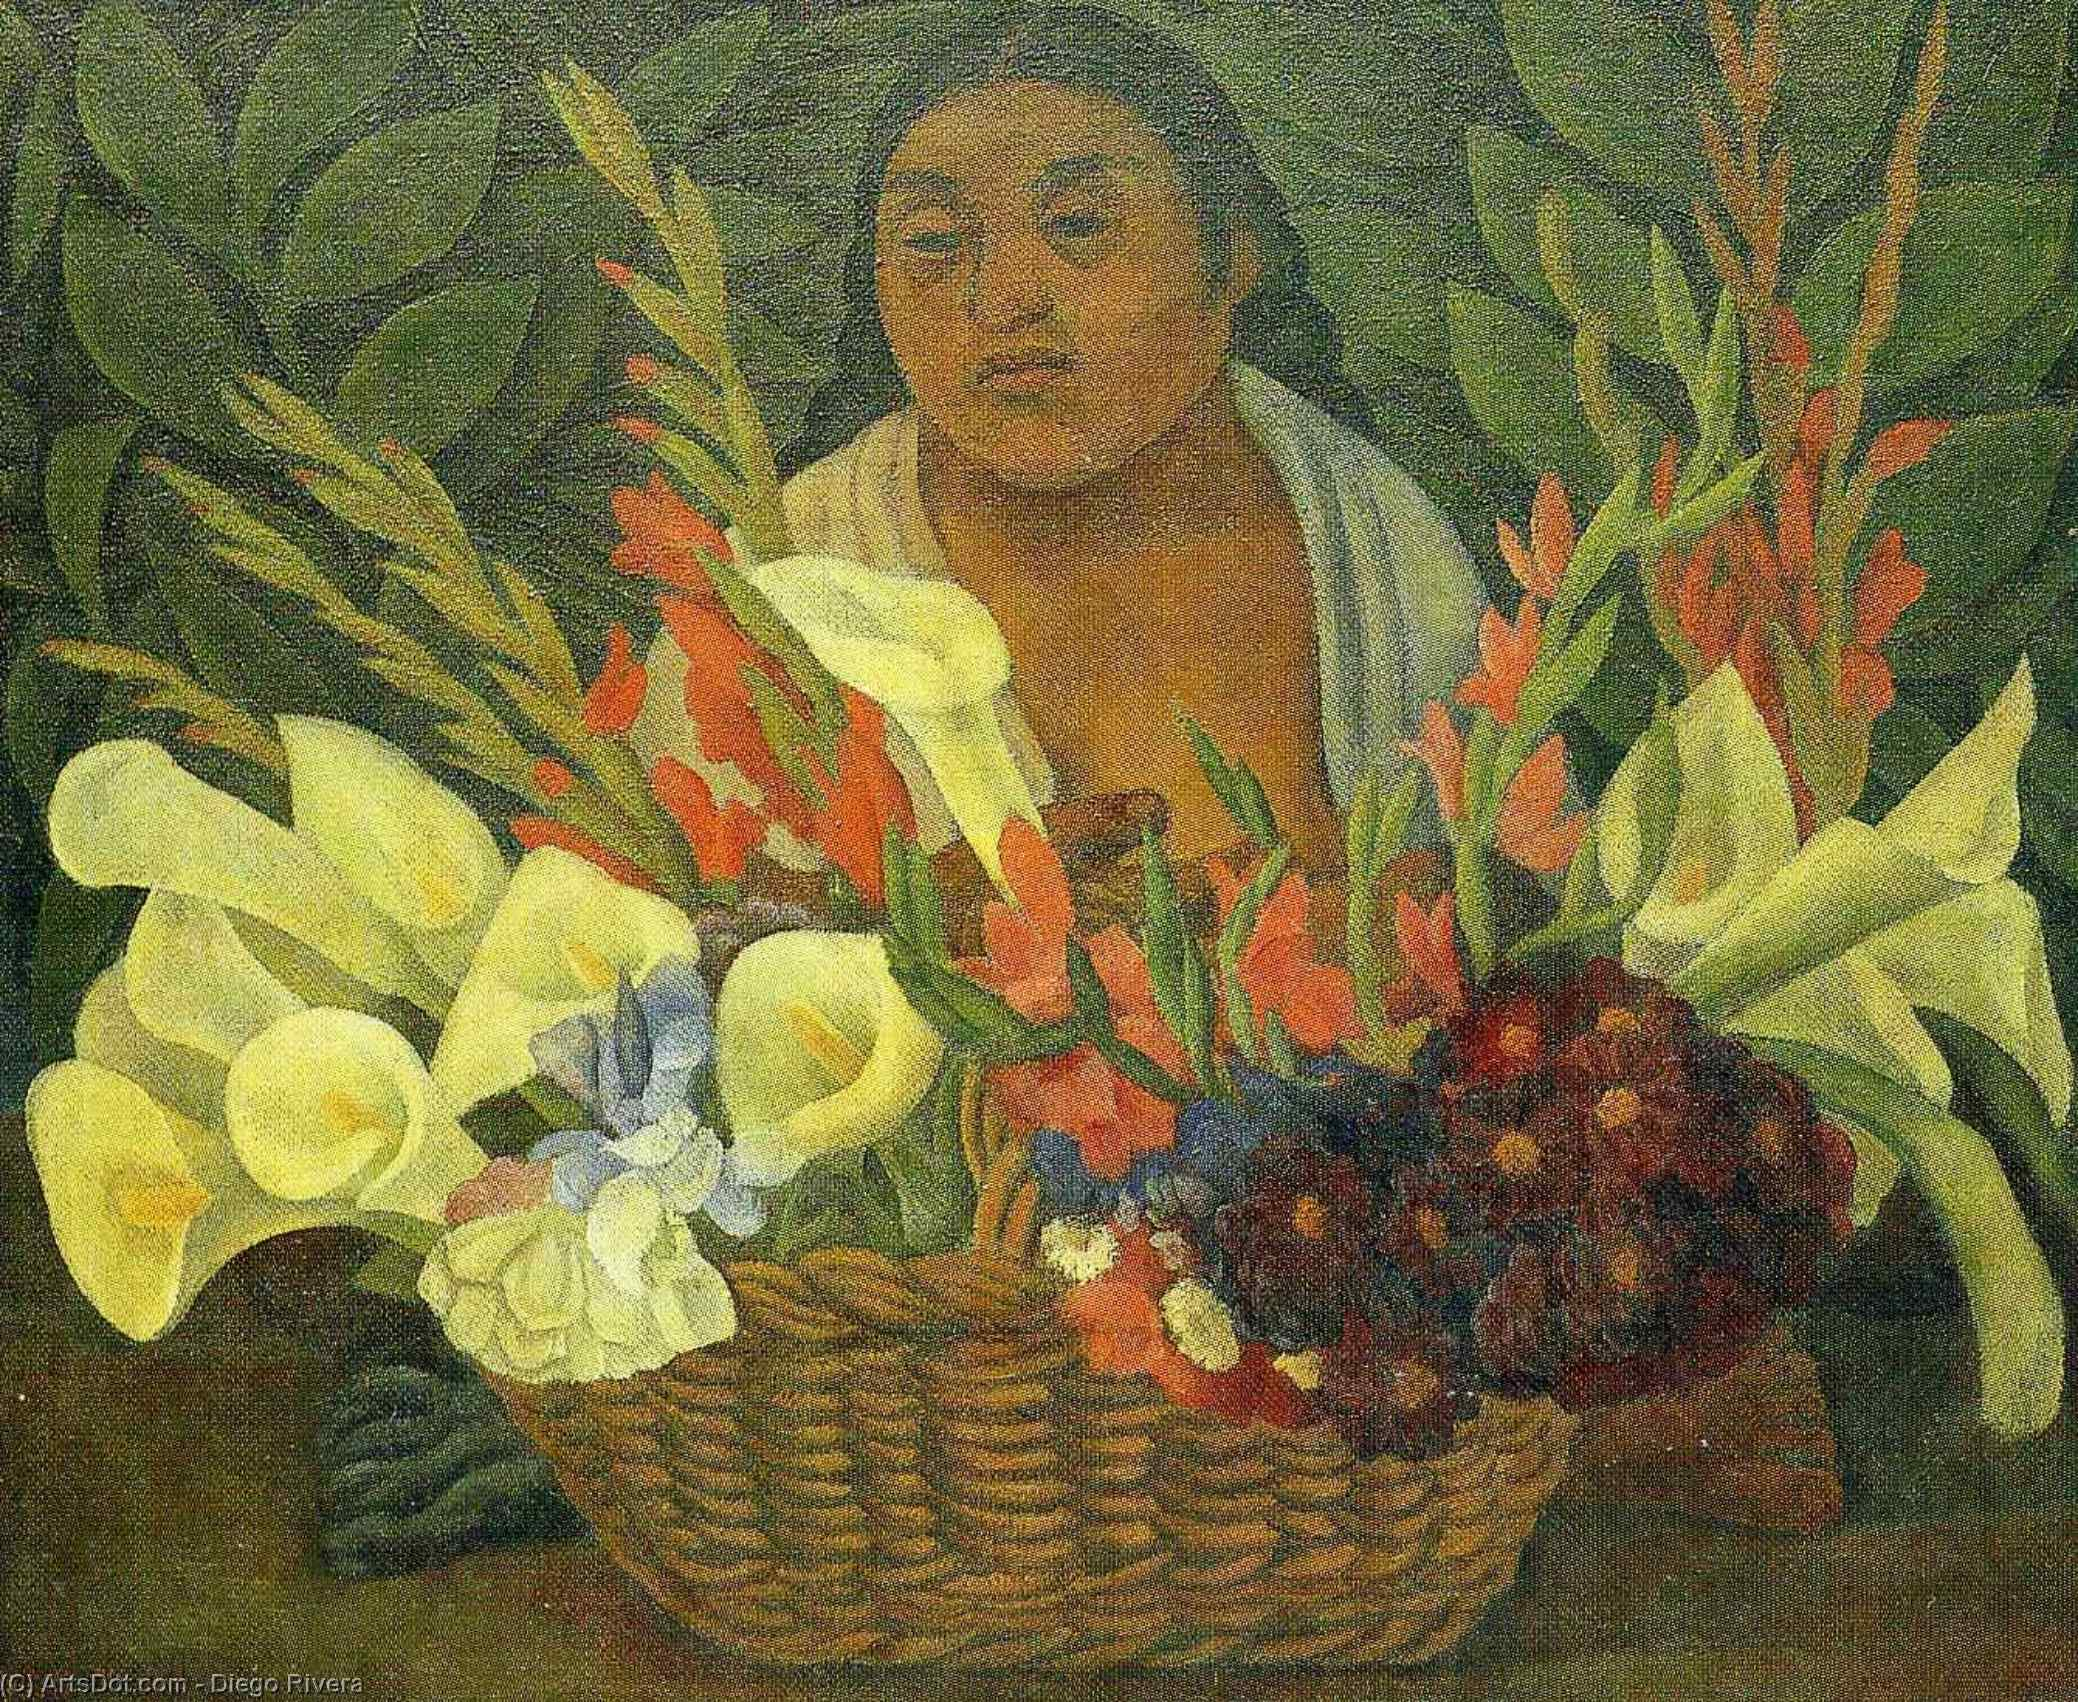 Flower Seller 2, Oil by Diego Rivera (1886-1957, Mexico)